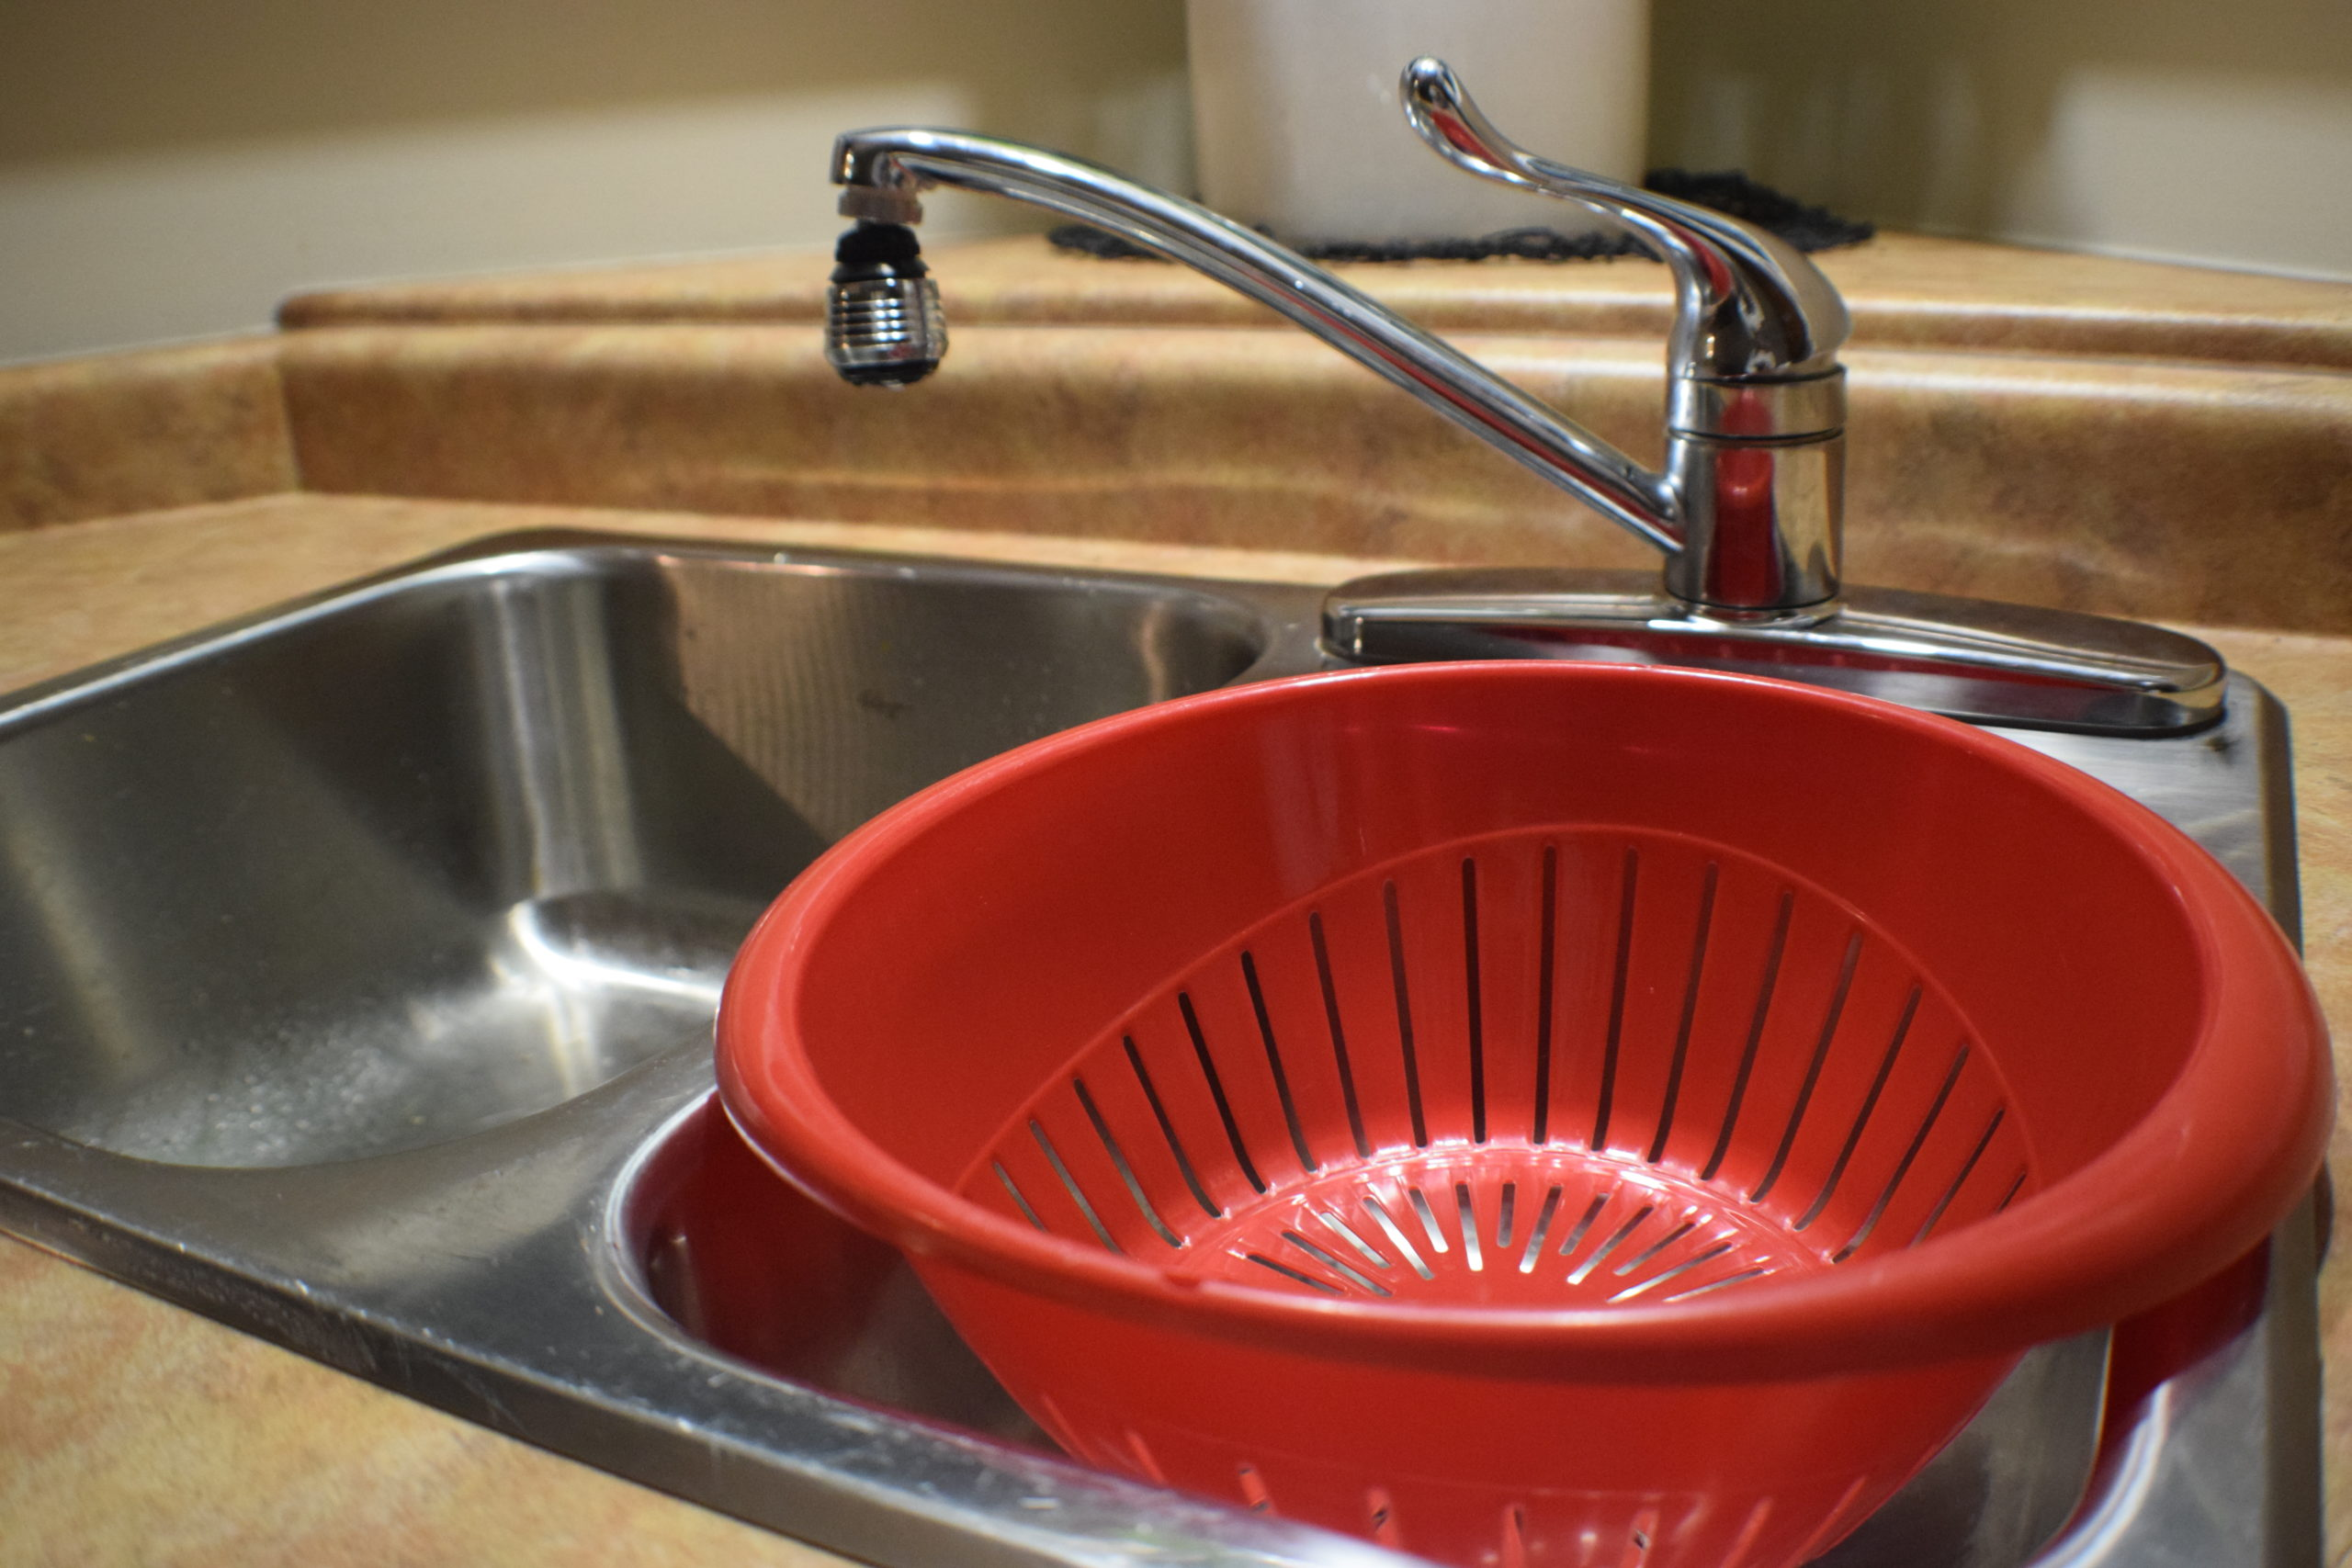 red strainer in small side of sink